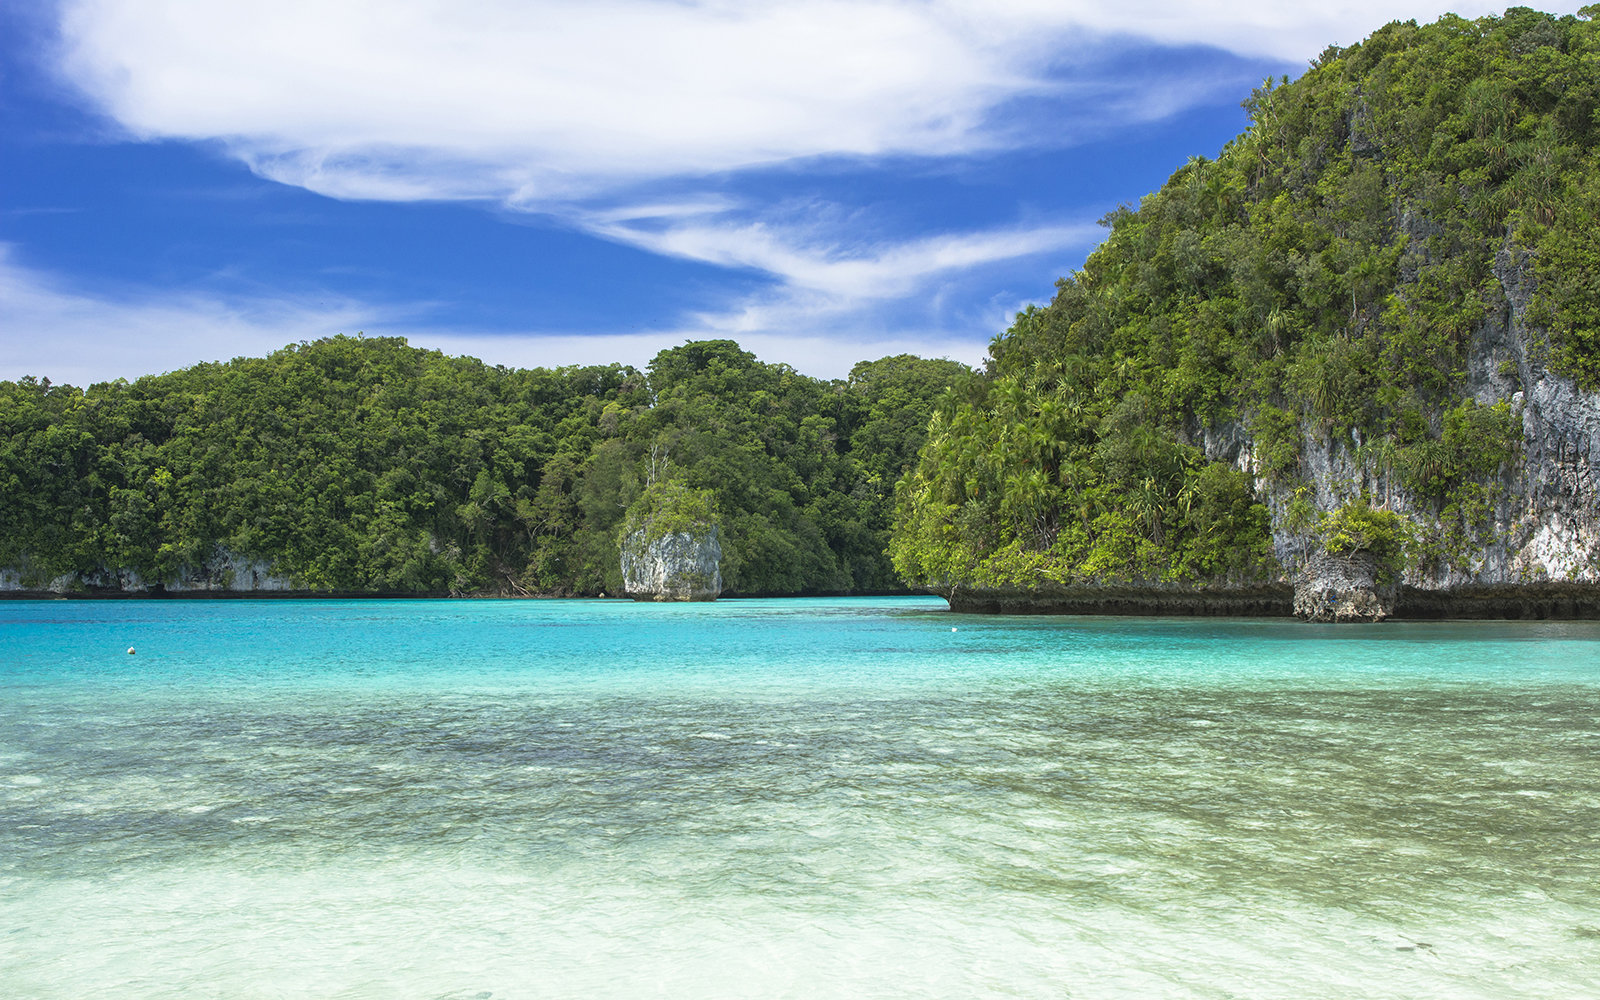 Palau travel guide |Palau Vacation